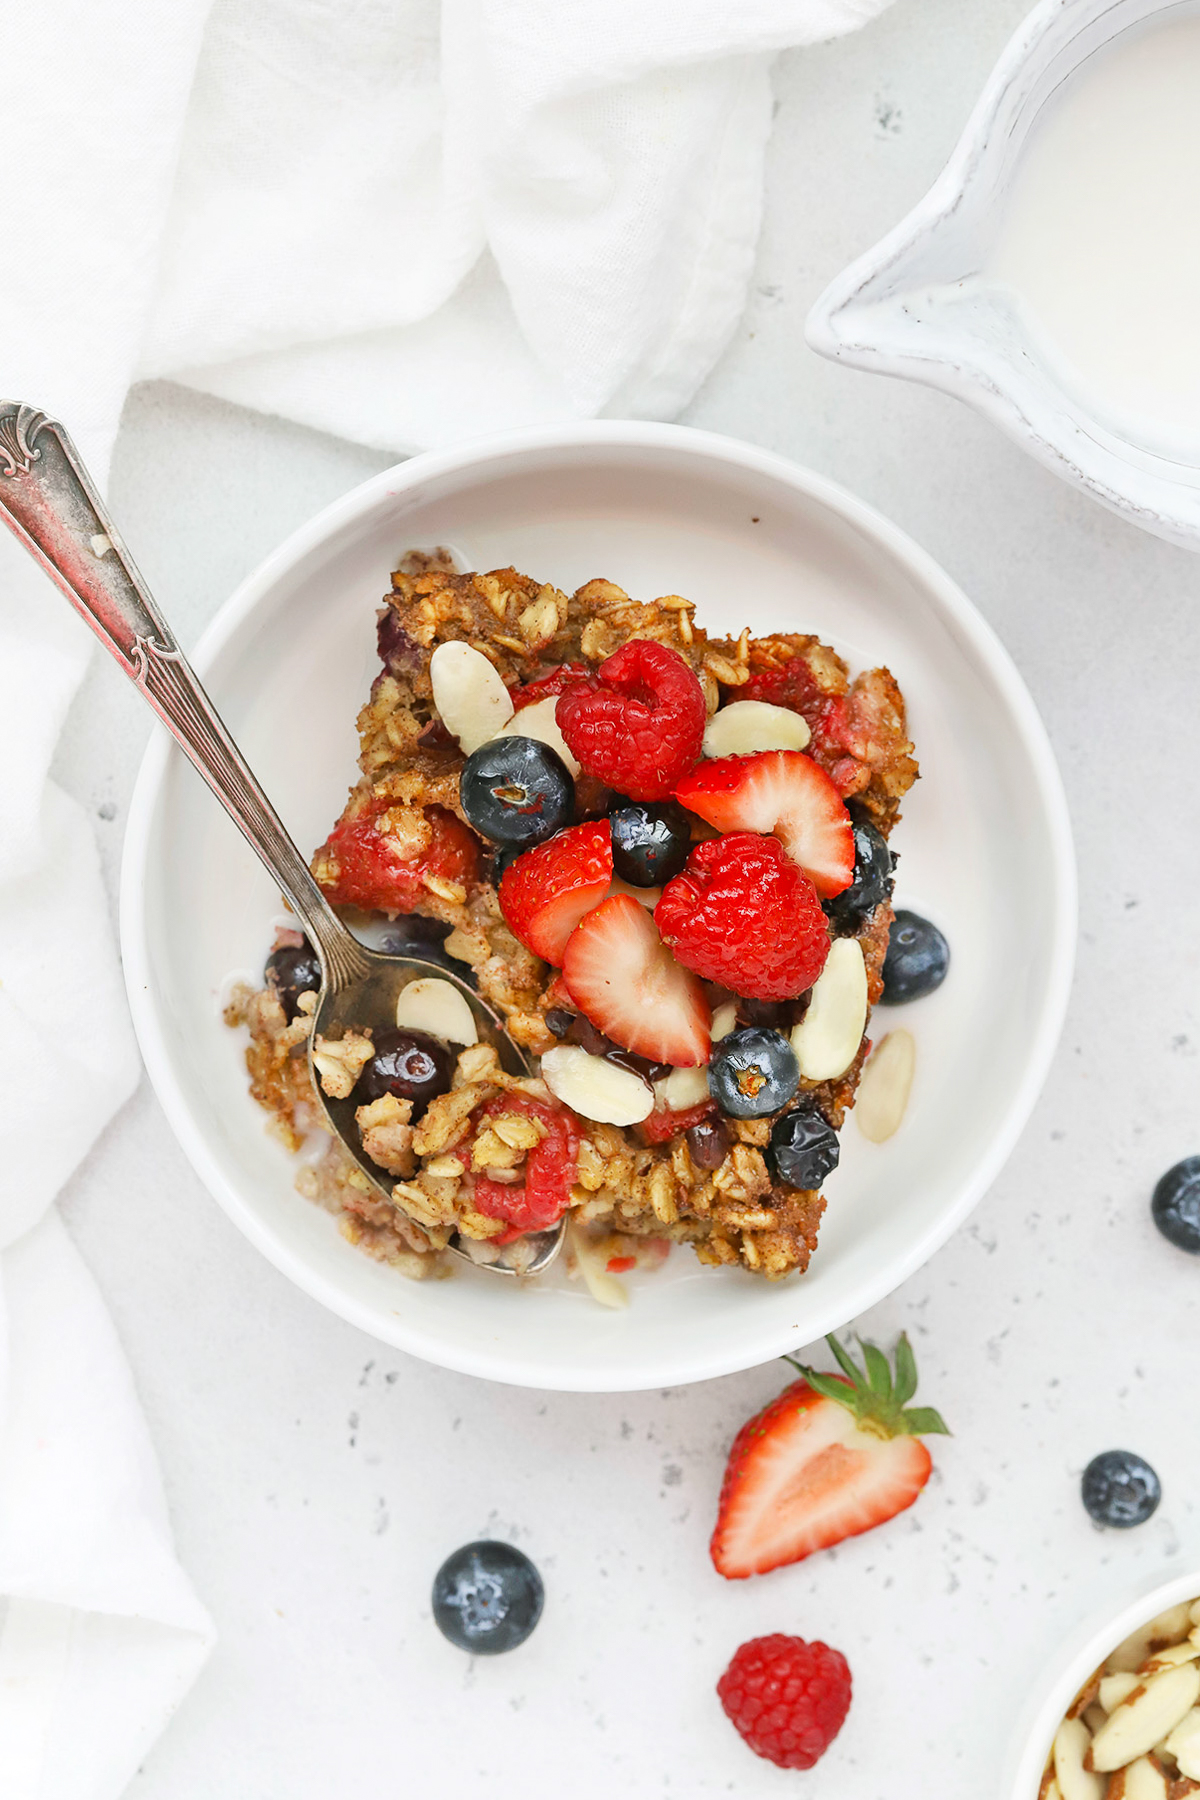 Overhead view of a slice of mixed berry baked oatmeal topped with fresh berries, sliced almonds, and almond milk on a white background